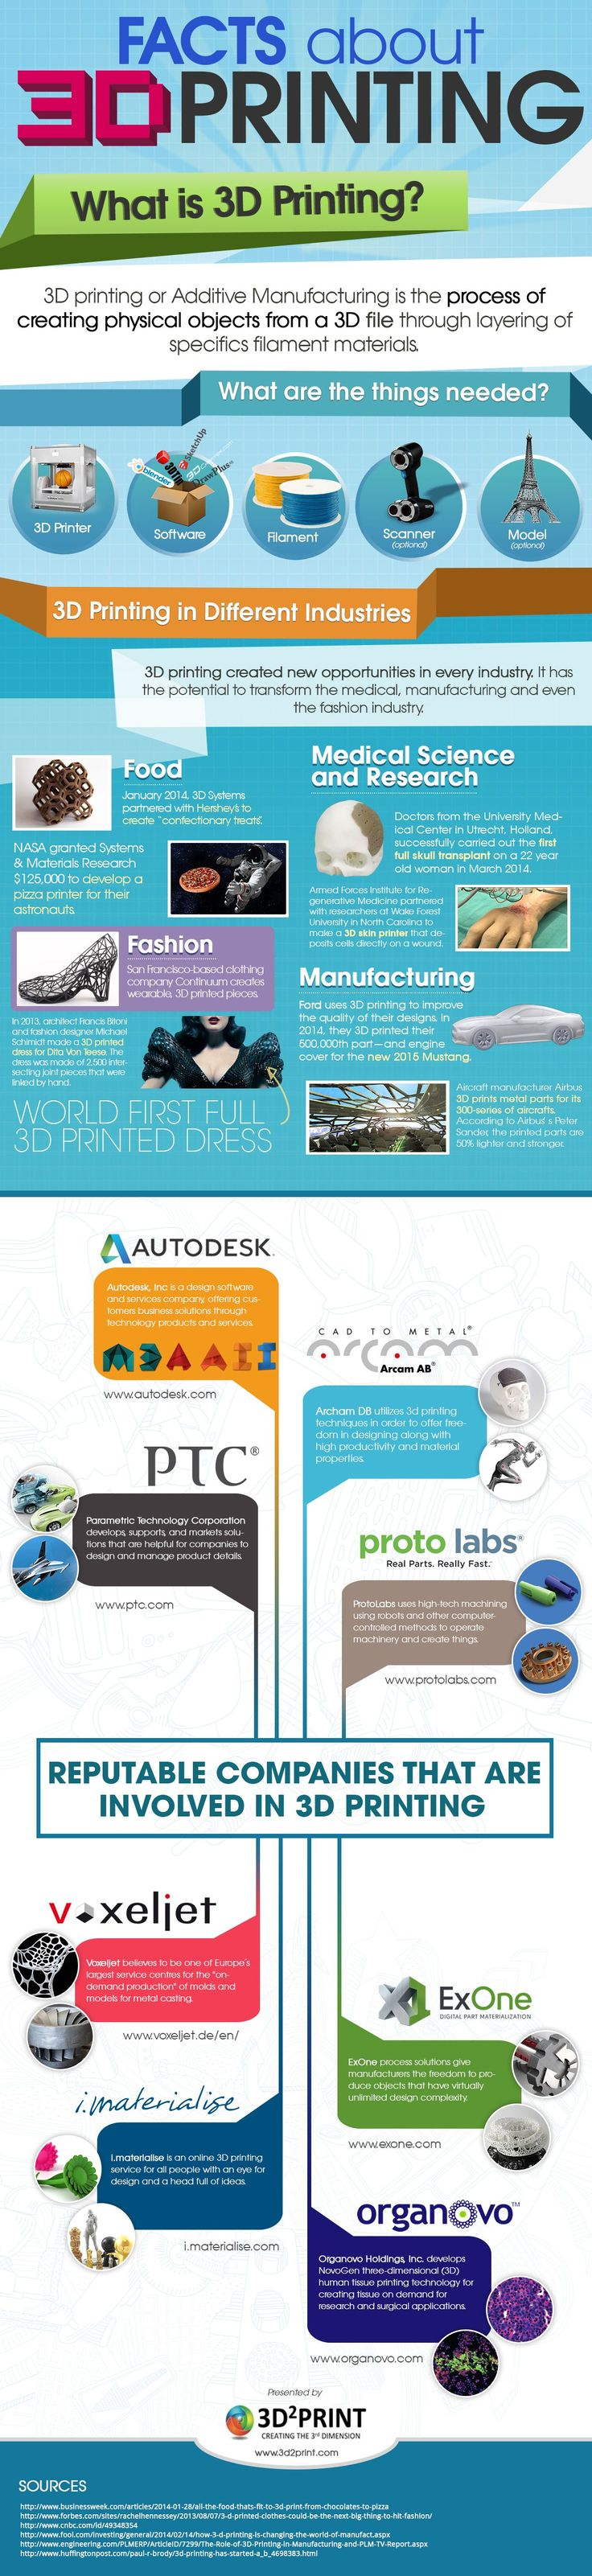 facts-about-3d-printing-infographic